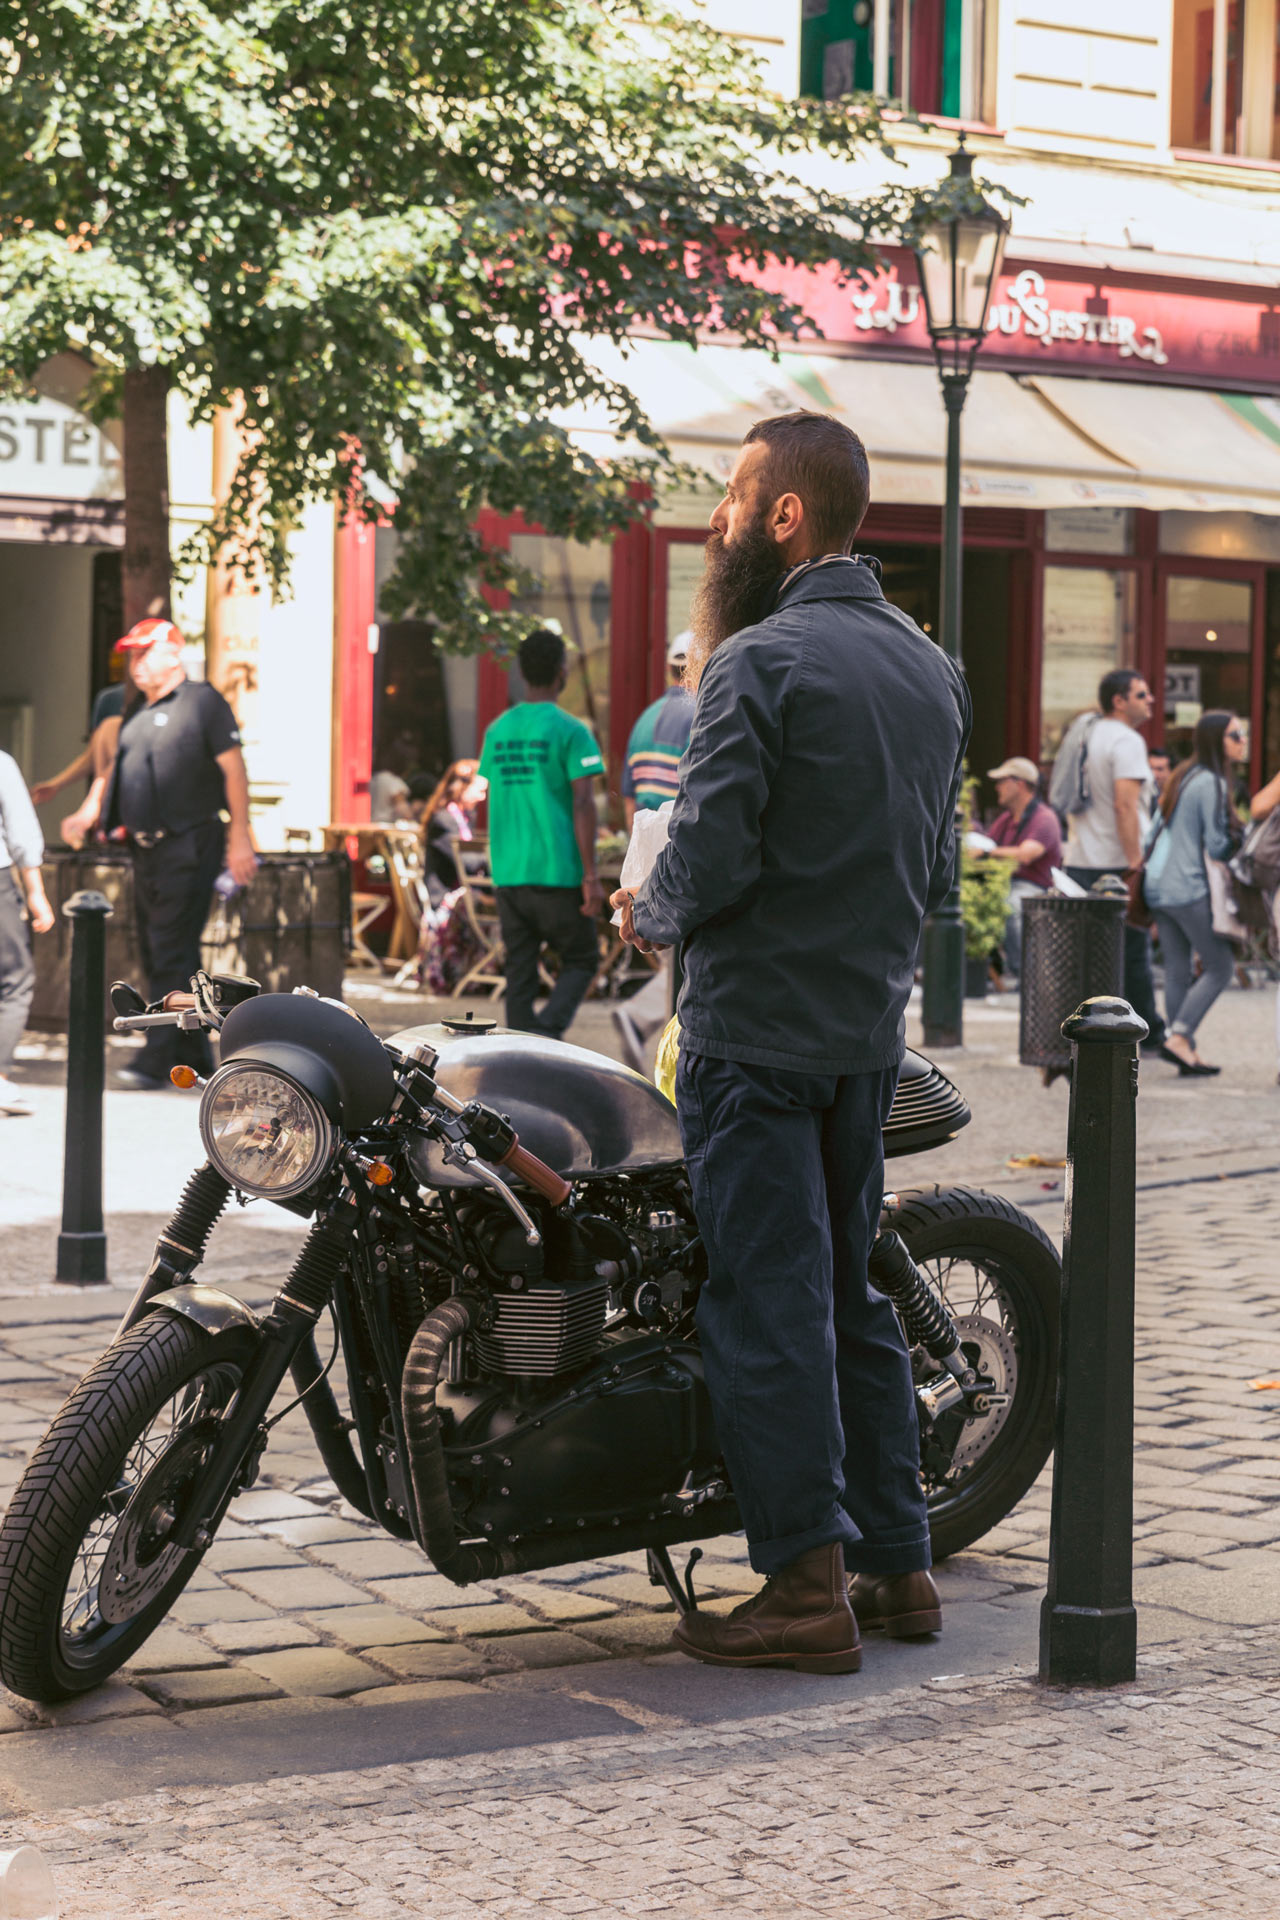 A classy man and his bike, paparazzi style.